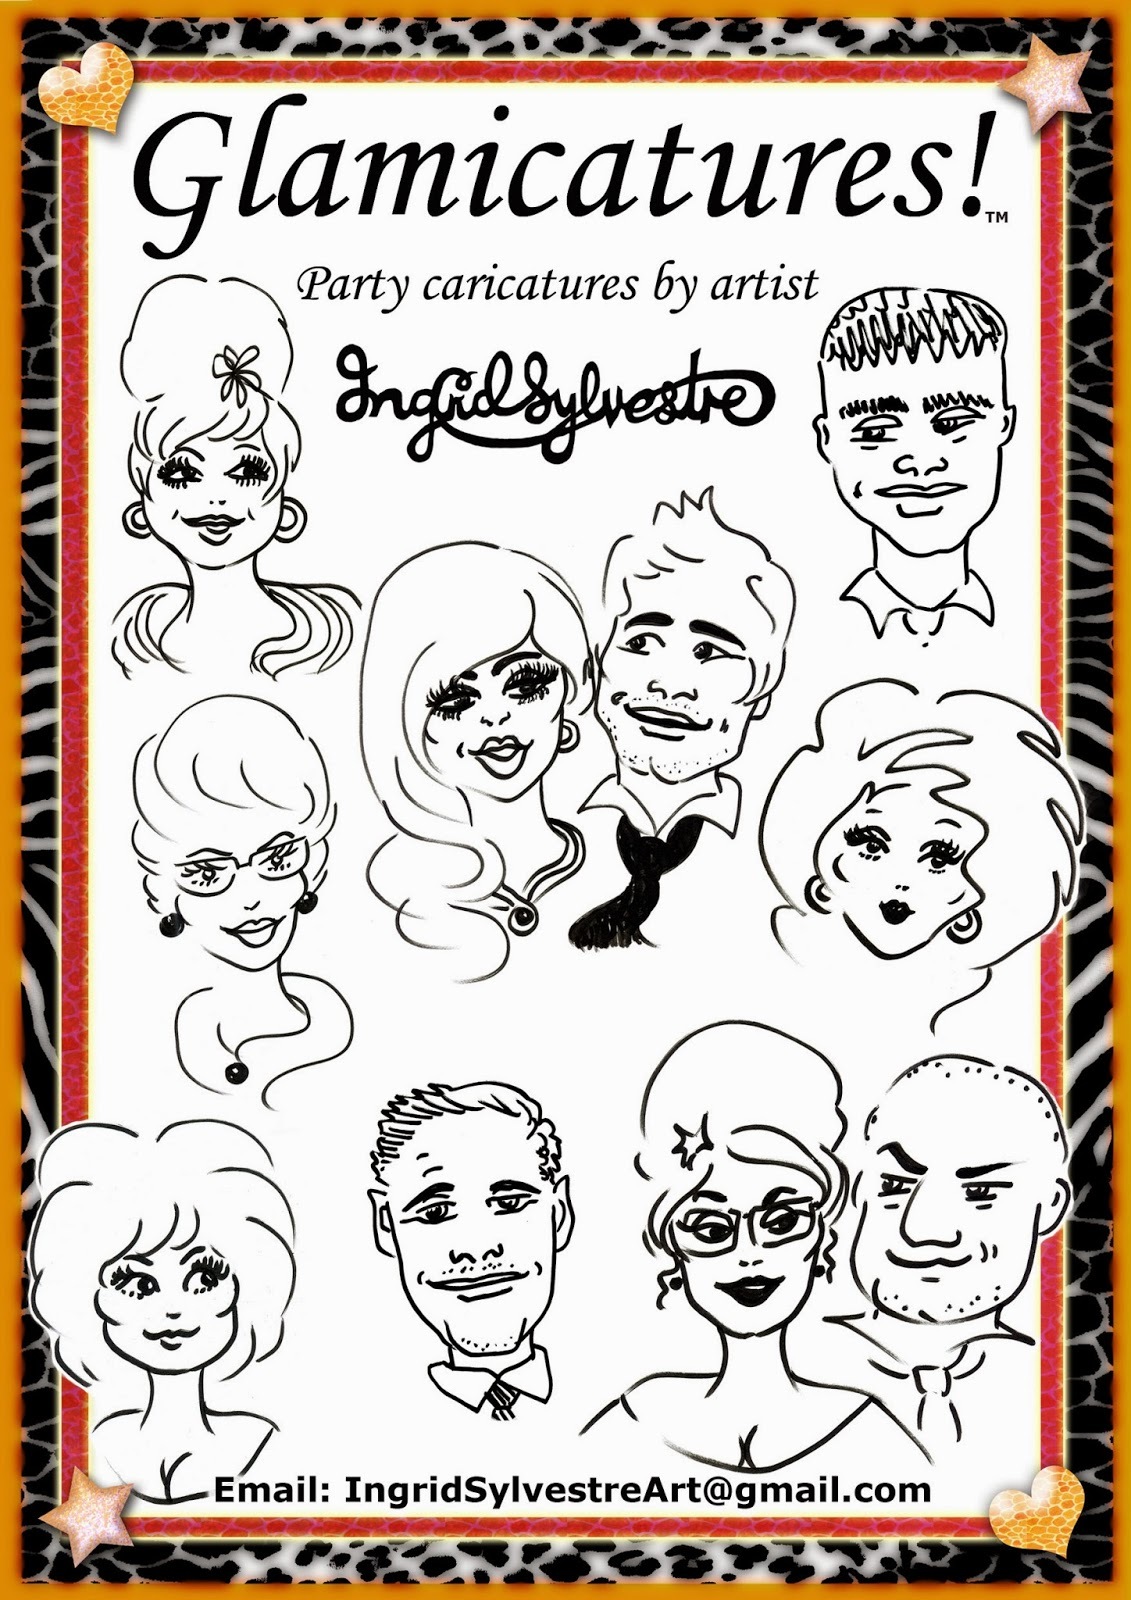 Glamicatures - Party Caricatures that make you look good!